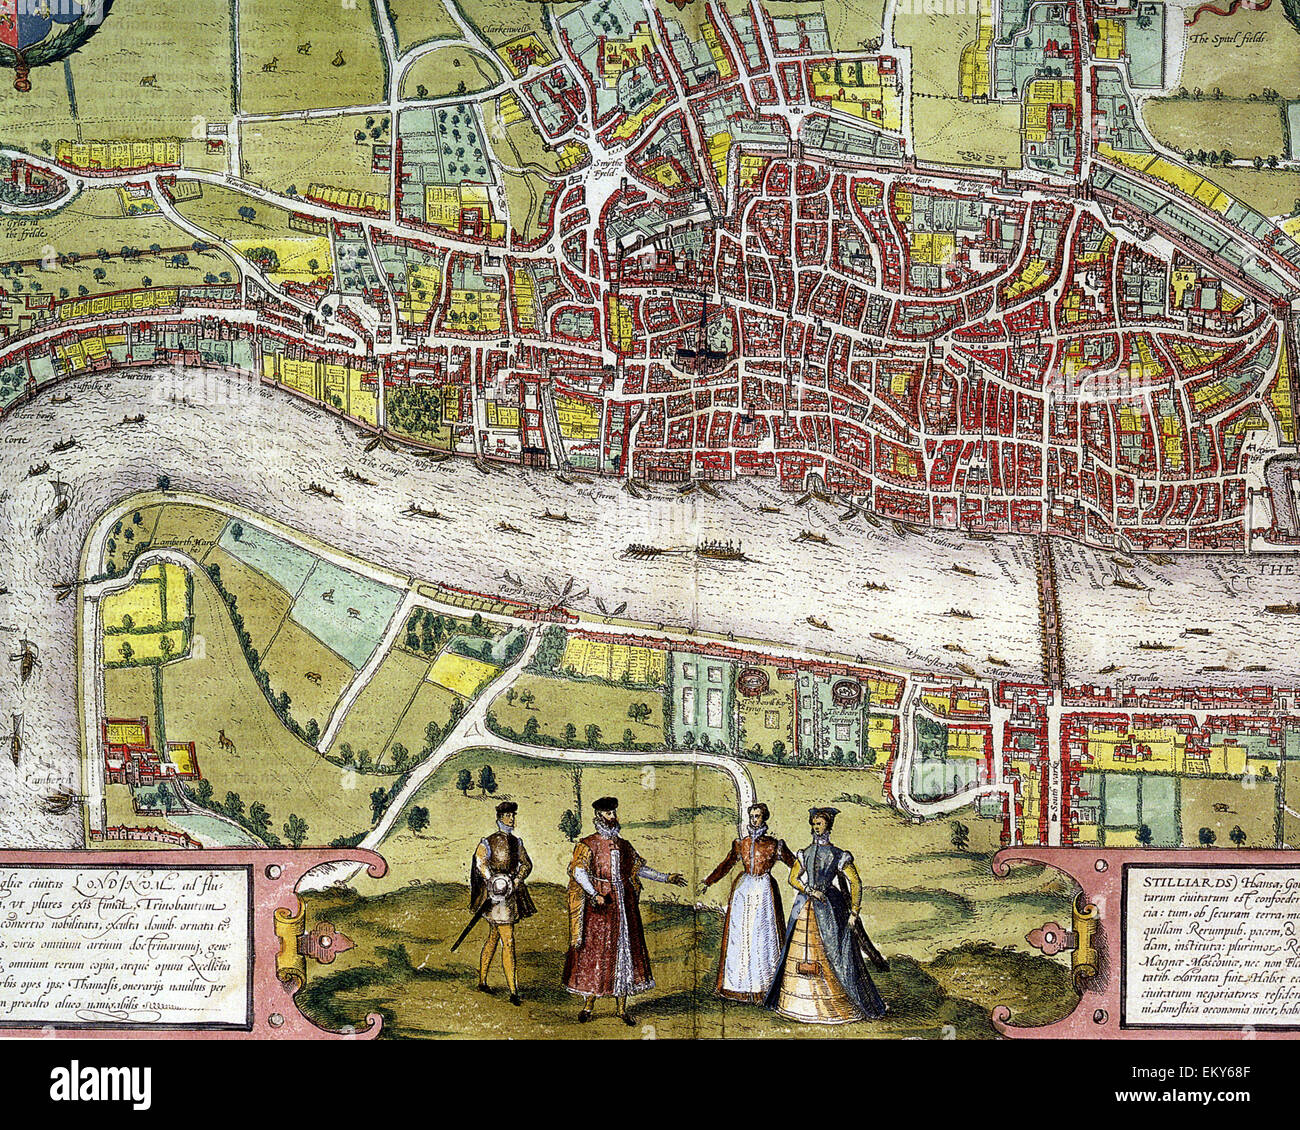 ELIZABETHAN LONDON  Centre section of Braun and Hogenberg's map printed in 1572 - Stock Image